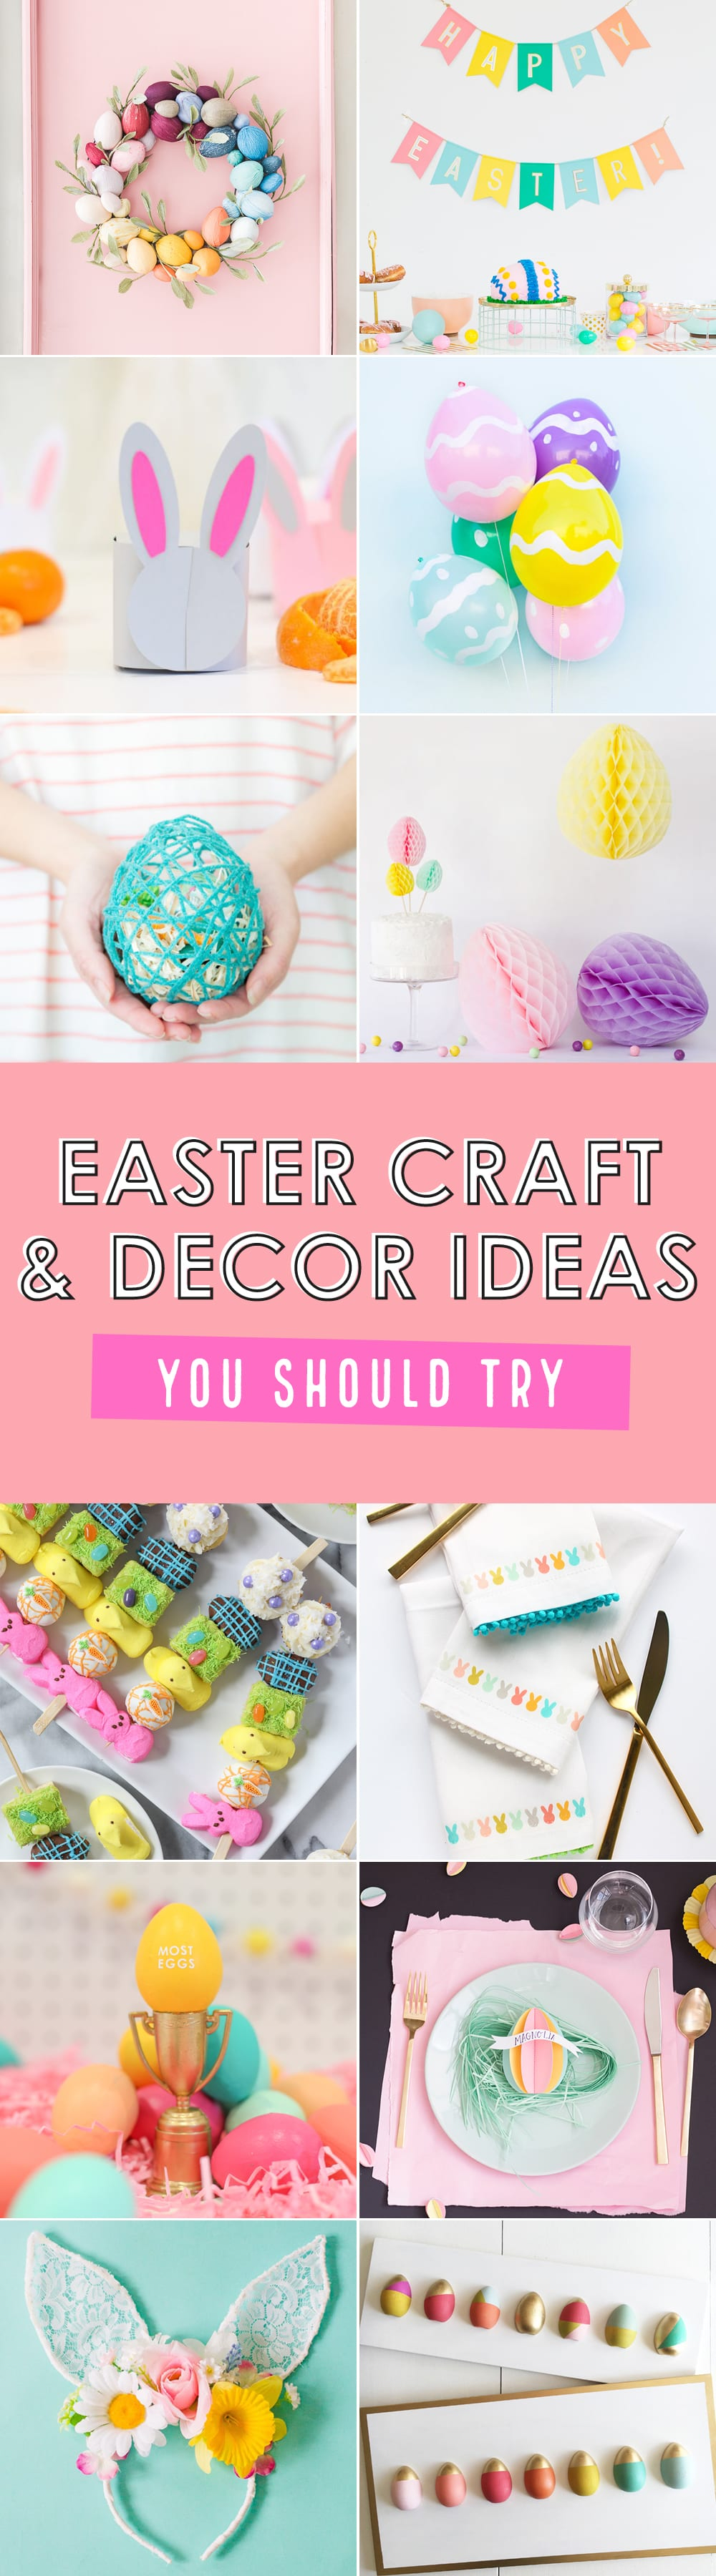 Easter craft and decor ideas to try